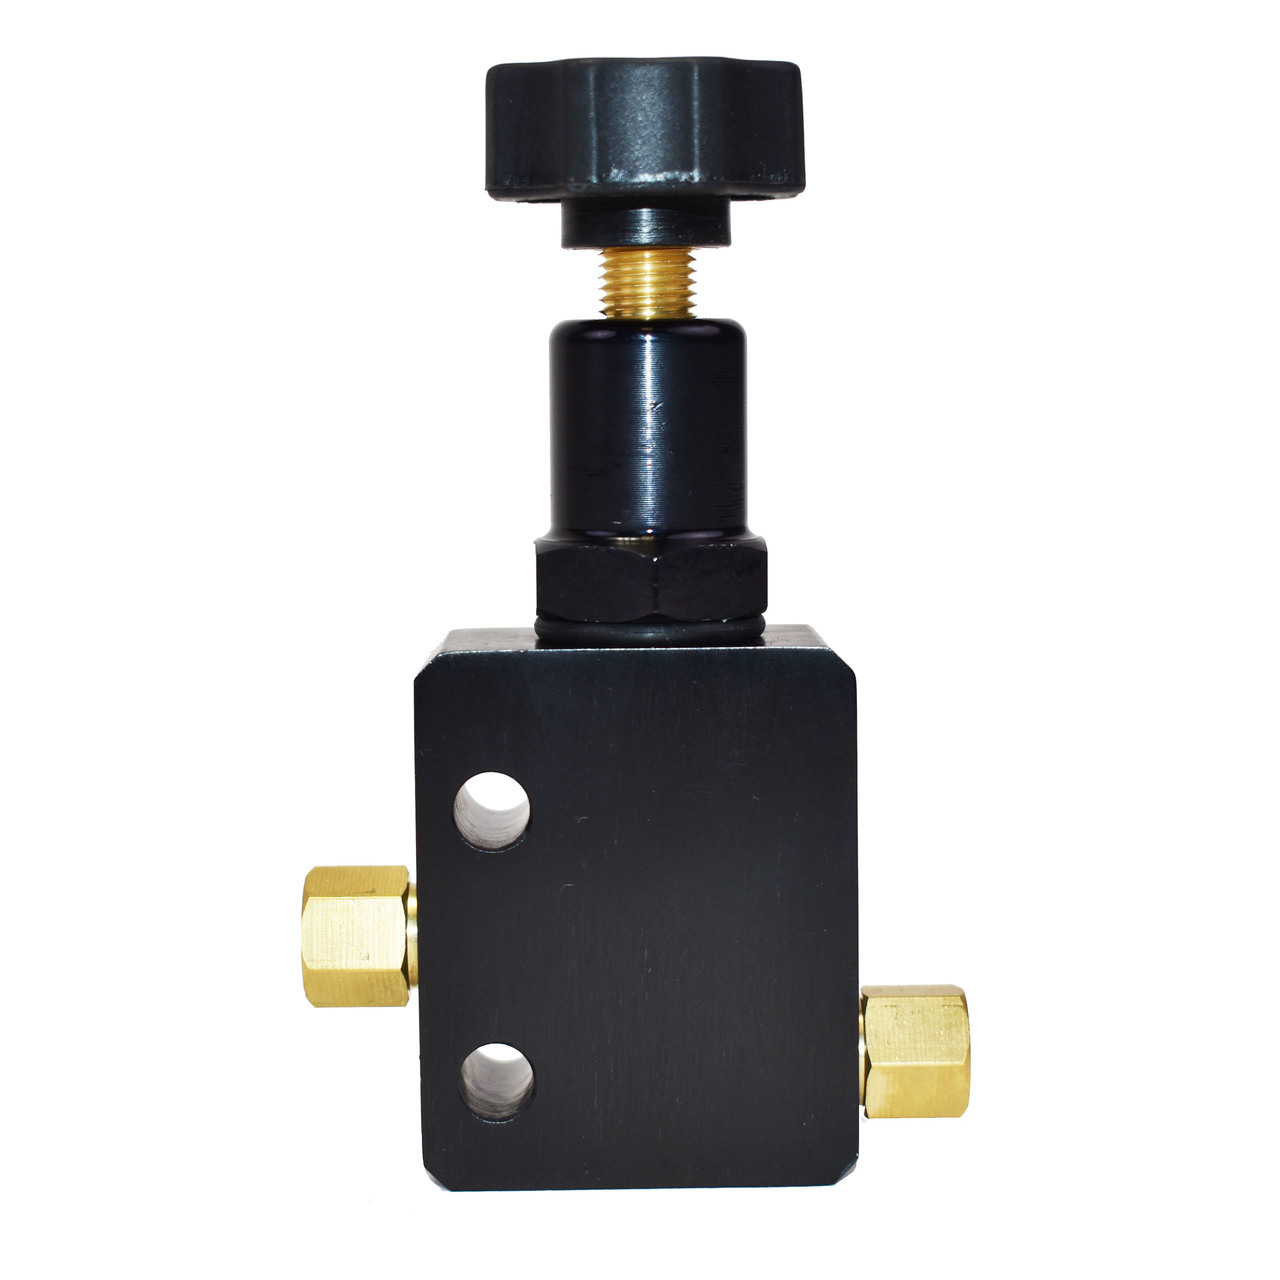 A-Team Performance Adjustable Proportioning Valve for Universal Hot Rods, 3/8-24 Fittings 3/16 Line